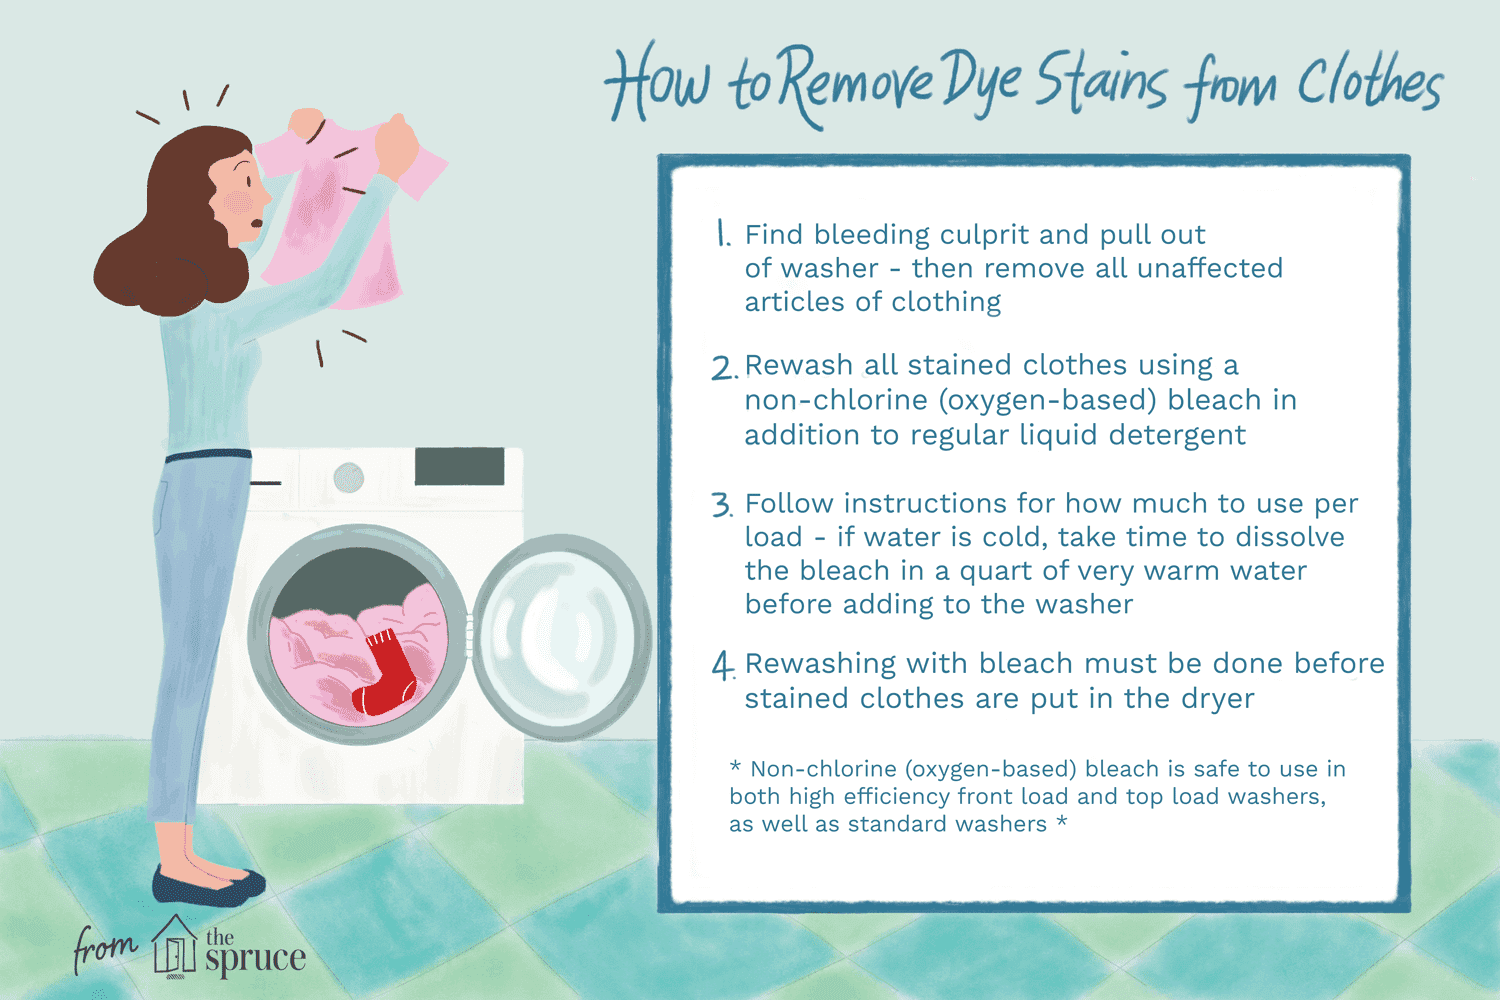 How To Remove Dye Stains From Clothes